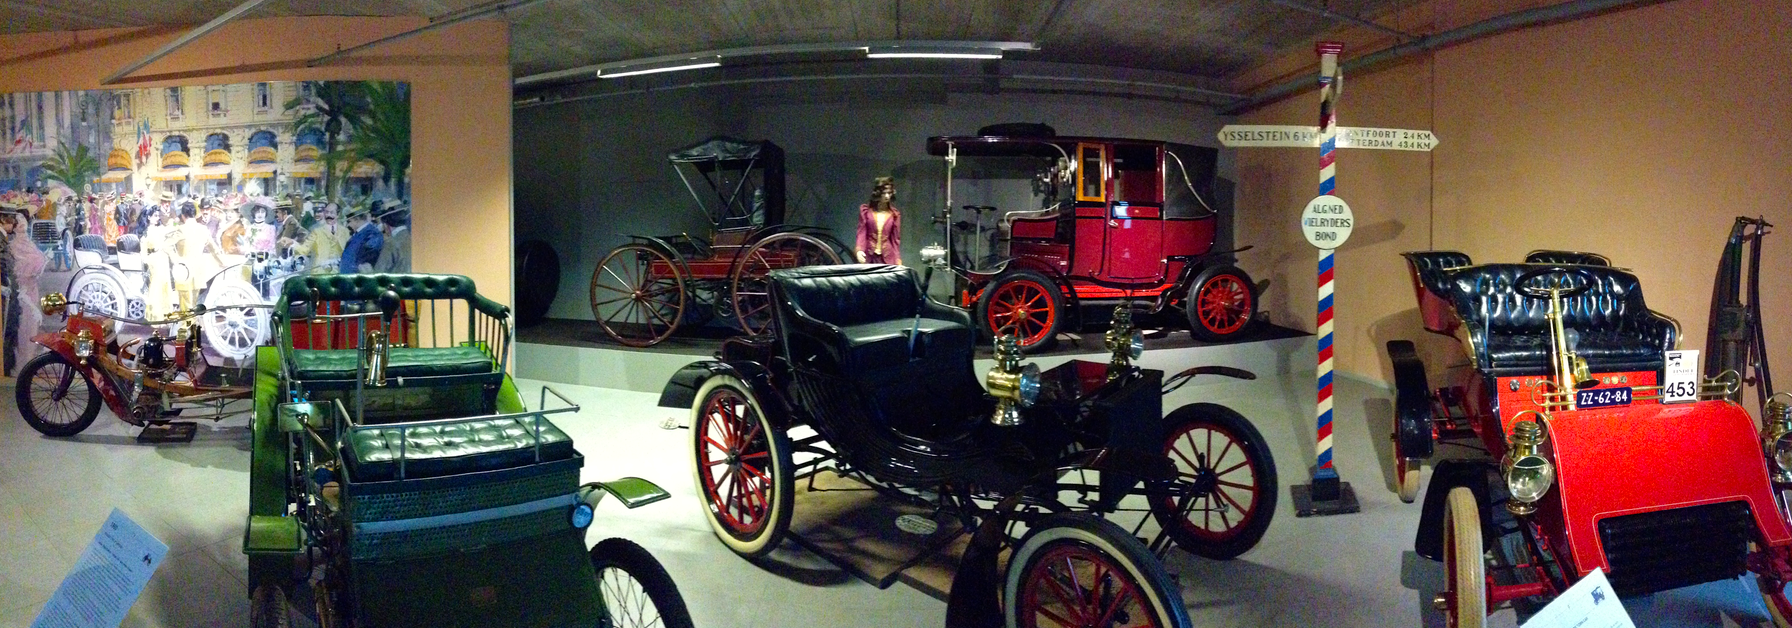 Early 20th Century cars and trikes